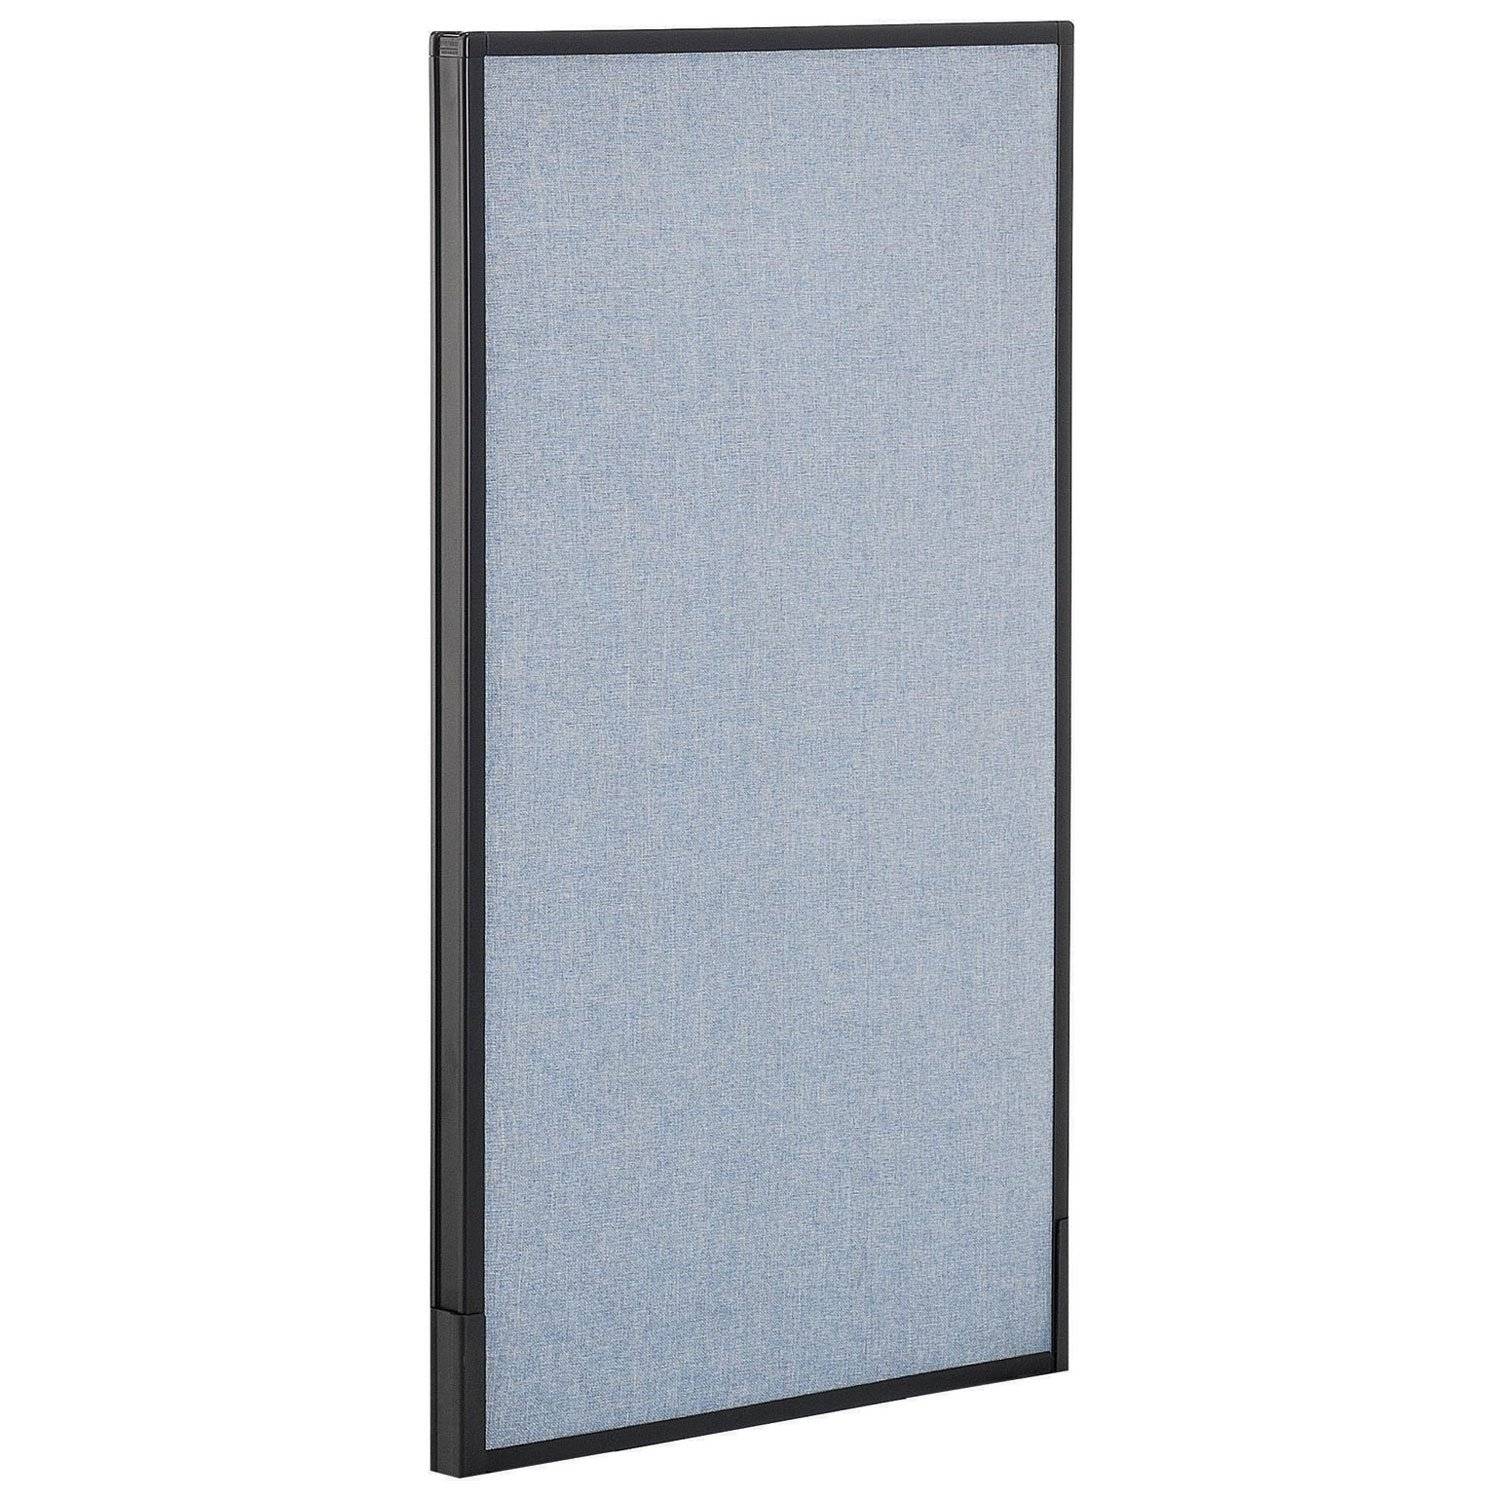 24-1/4''W x 42''H Office Partition Panel, Blue by Global Industrial